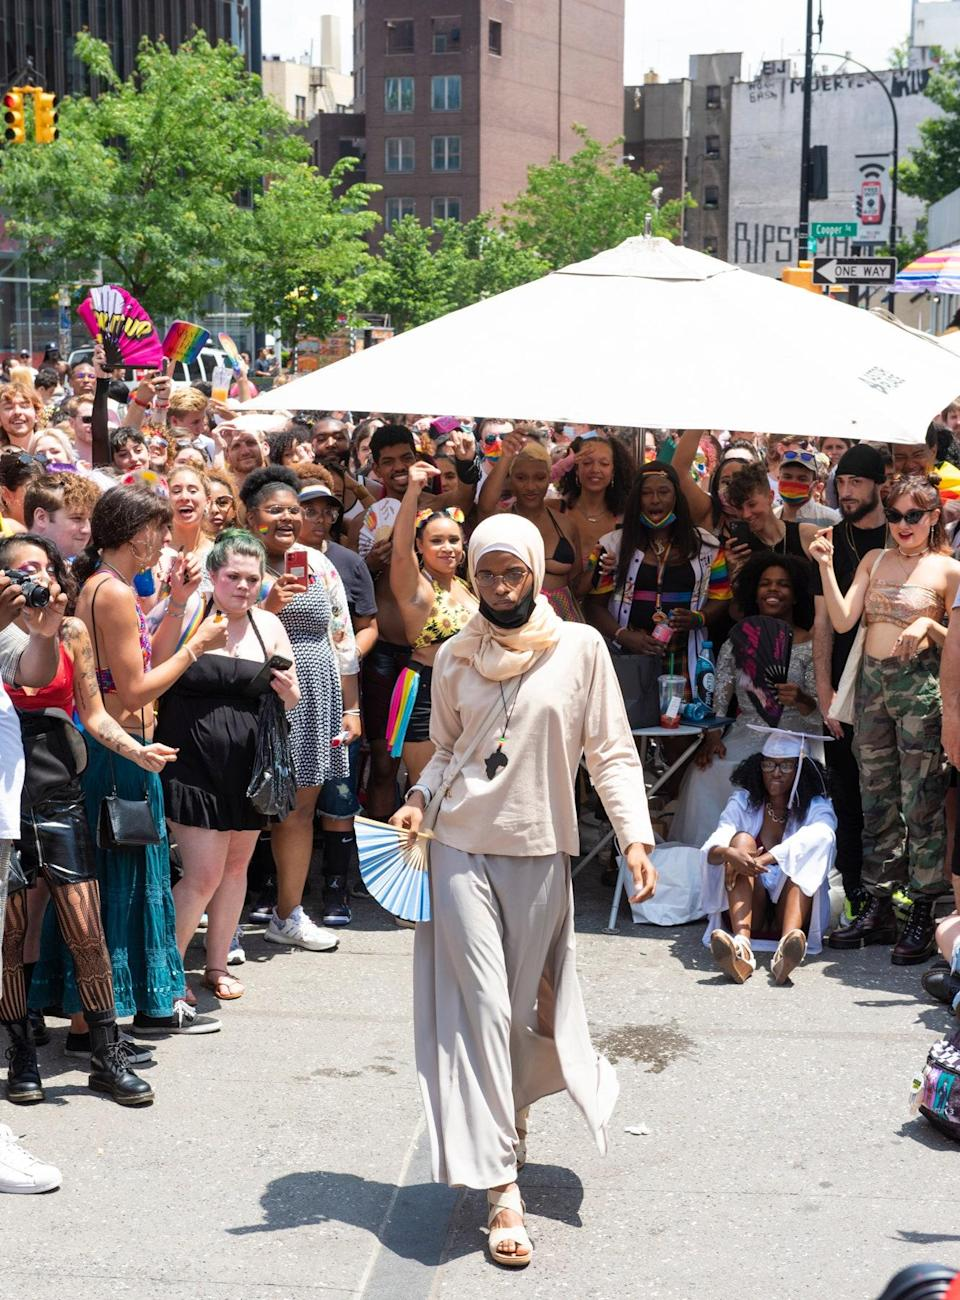 The Stonewall Protests at Rashid Johnson's Red Stage at Astor Place